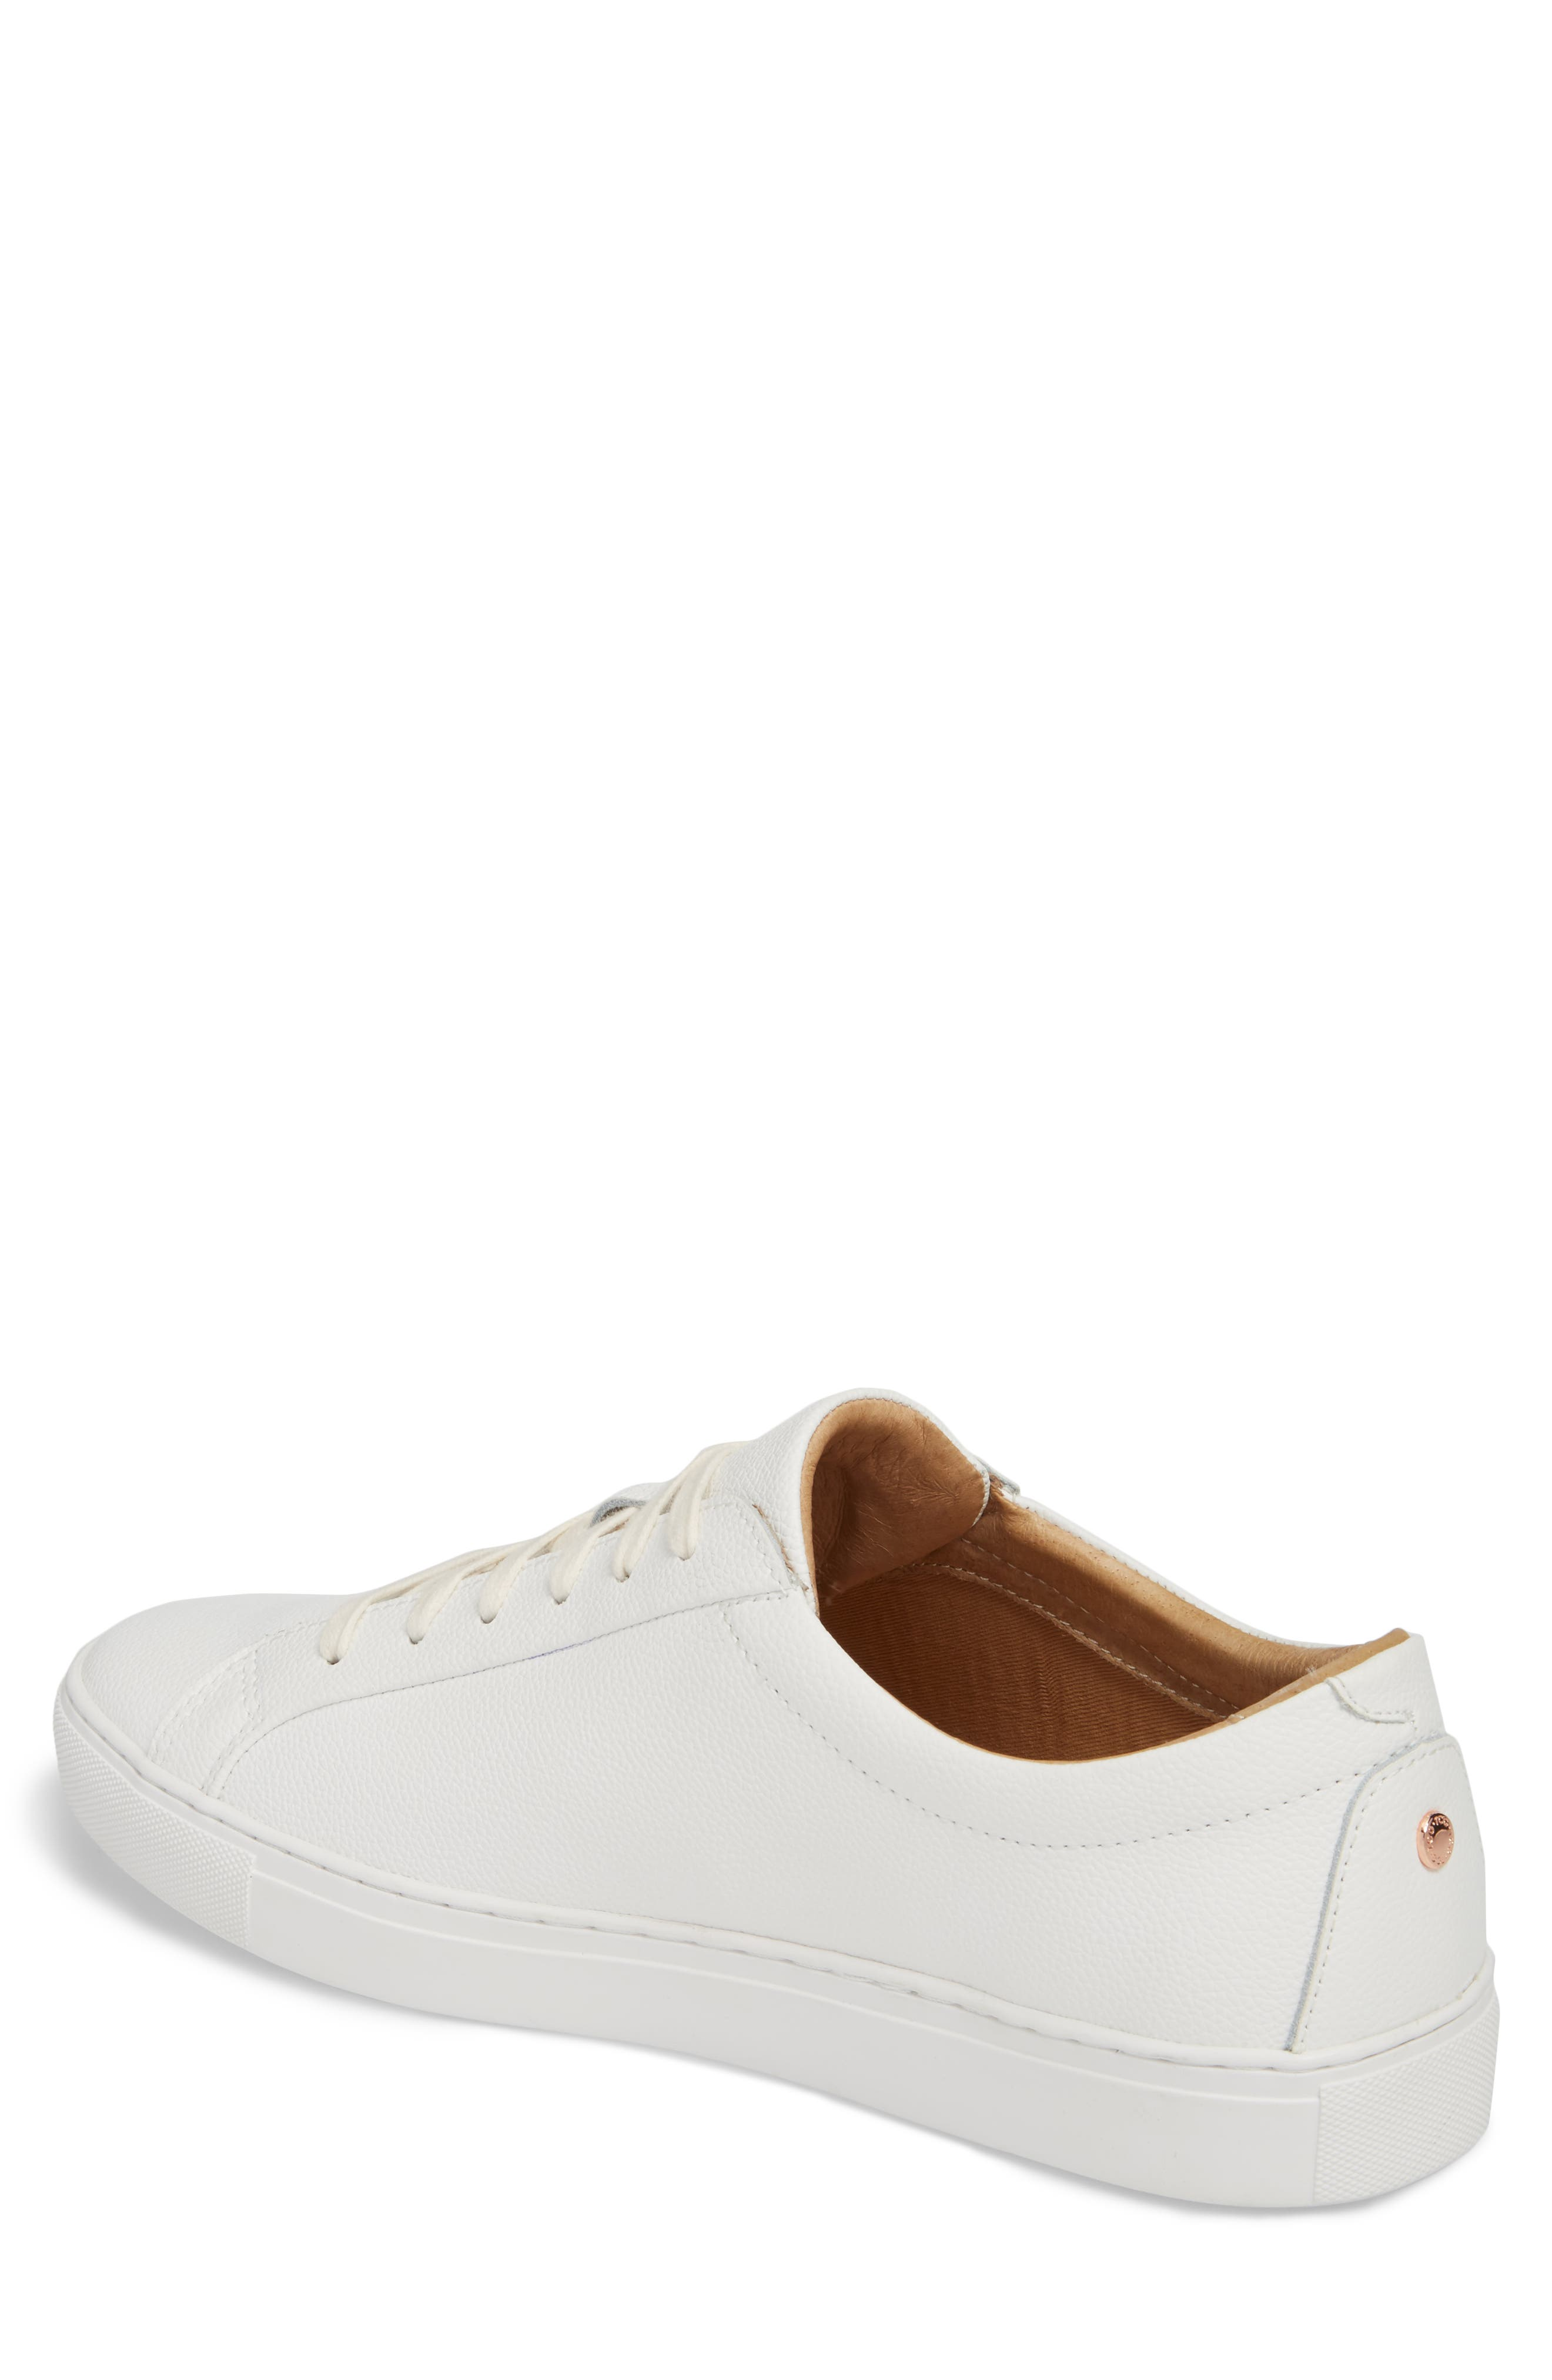 Kennedy Low Top Sneaker,                             Alternate thumbnail 2, color,                             WHITE LEATHER